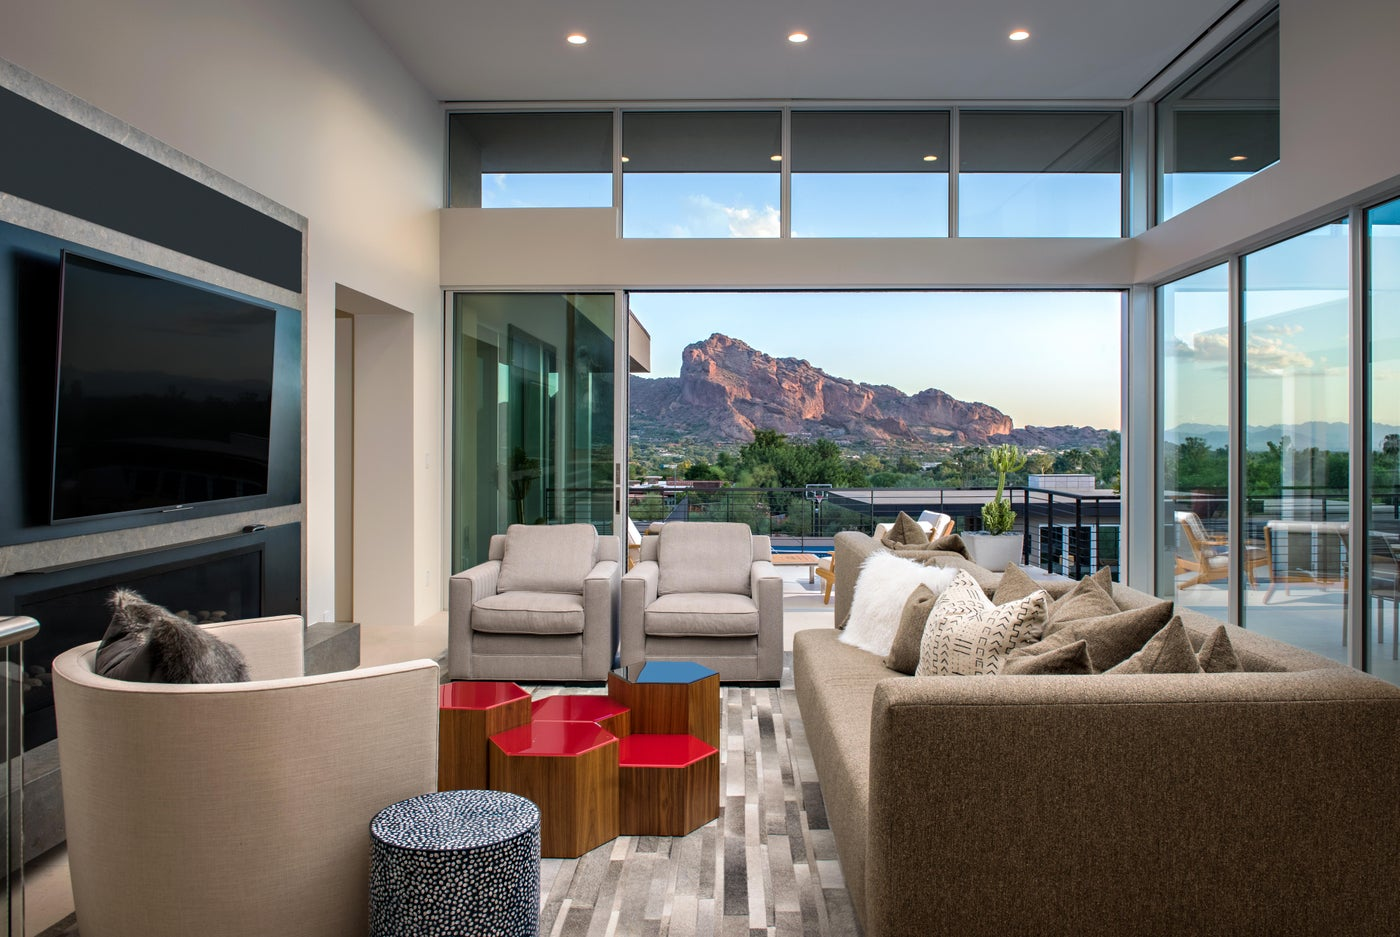 Modern Living Room with Mountain Views and Indoor/Outdoor Living